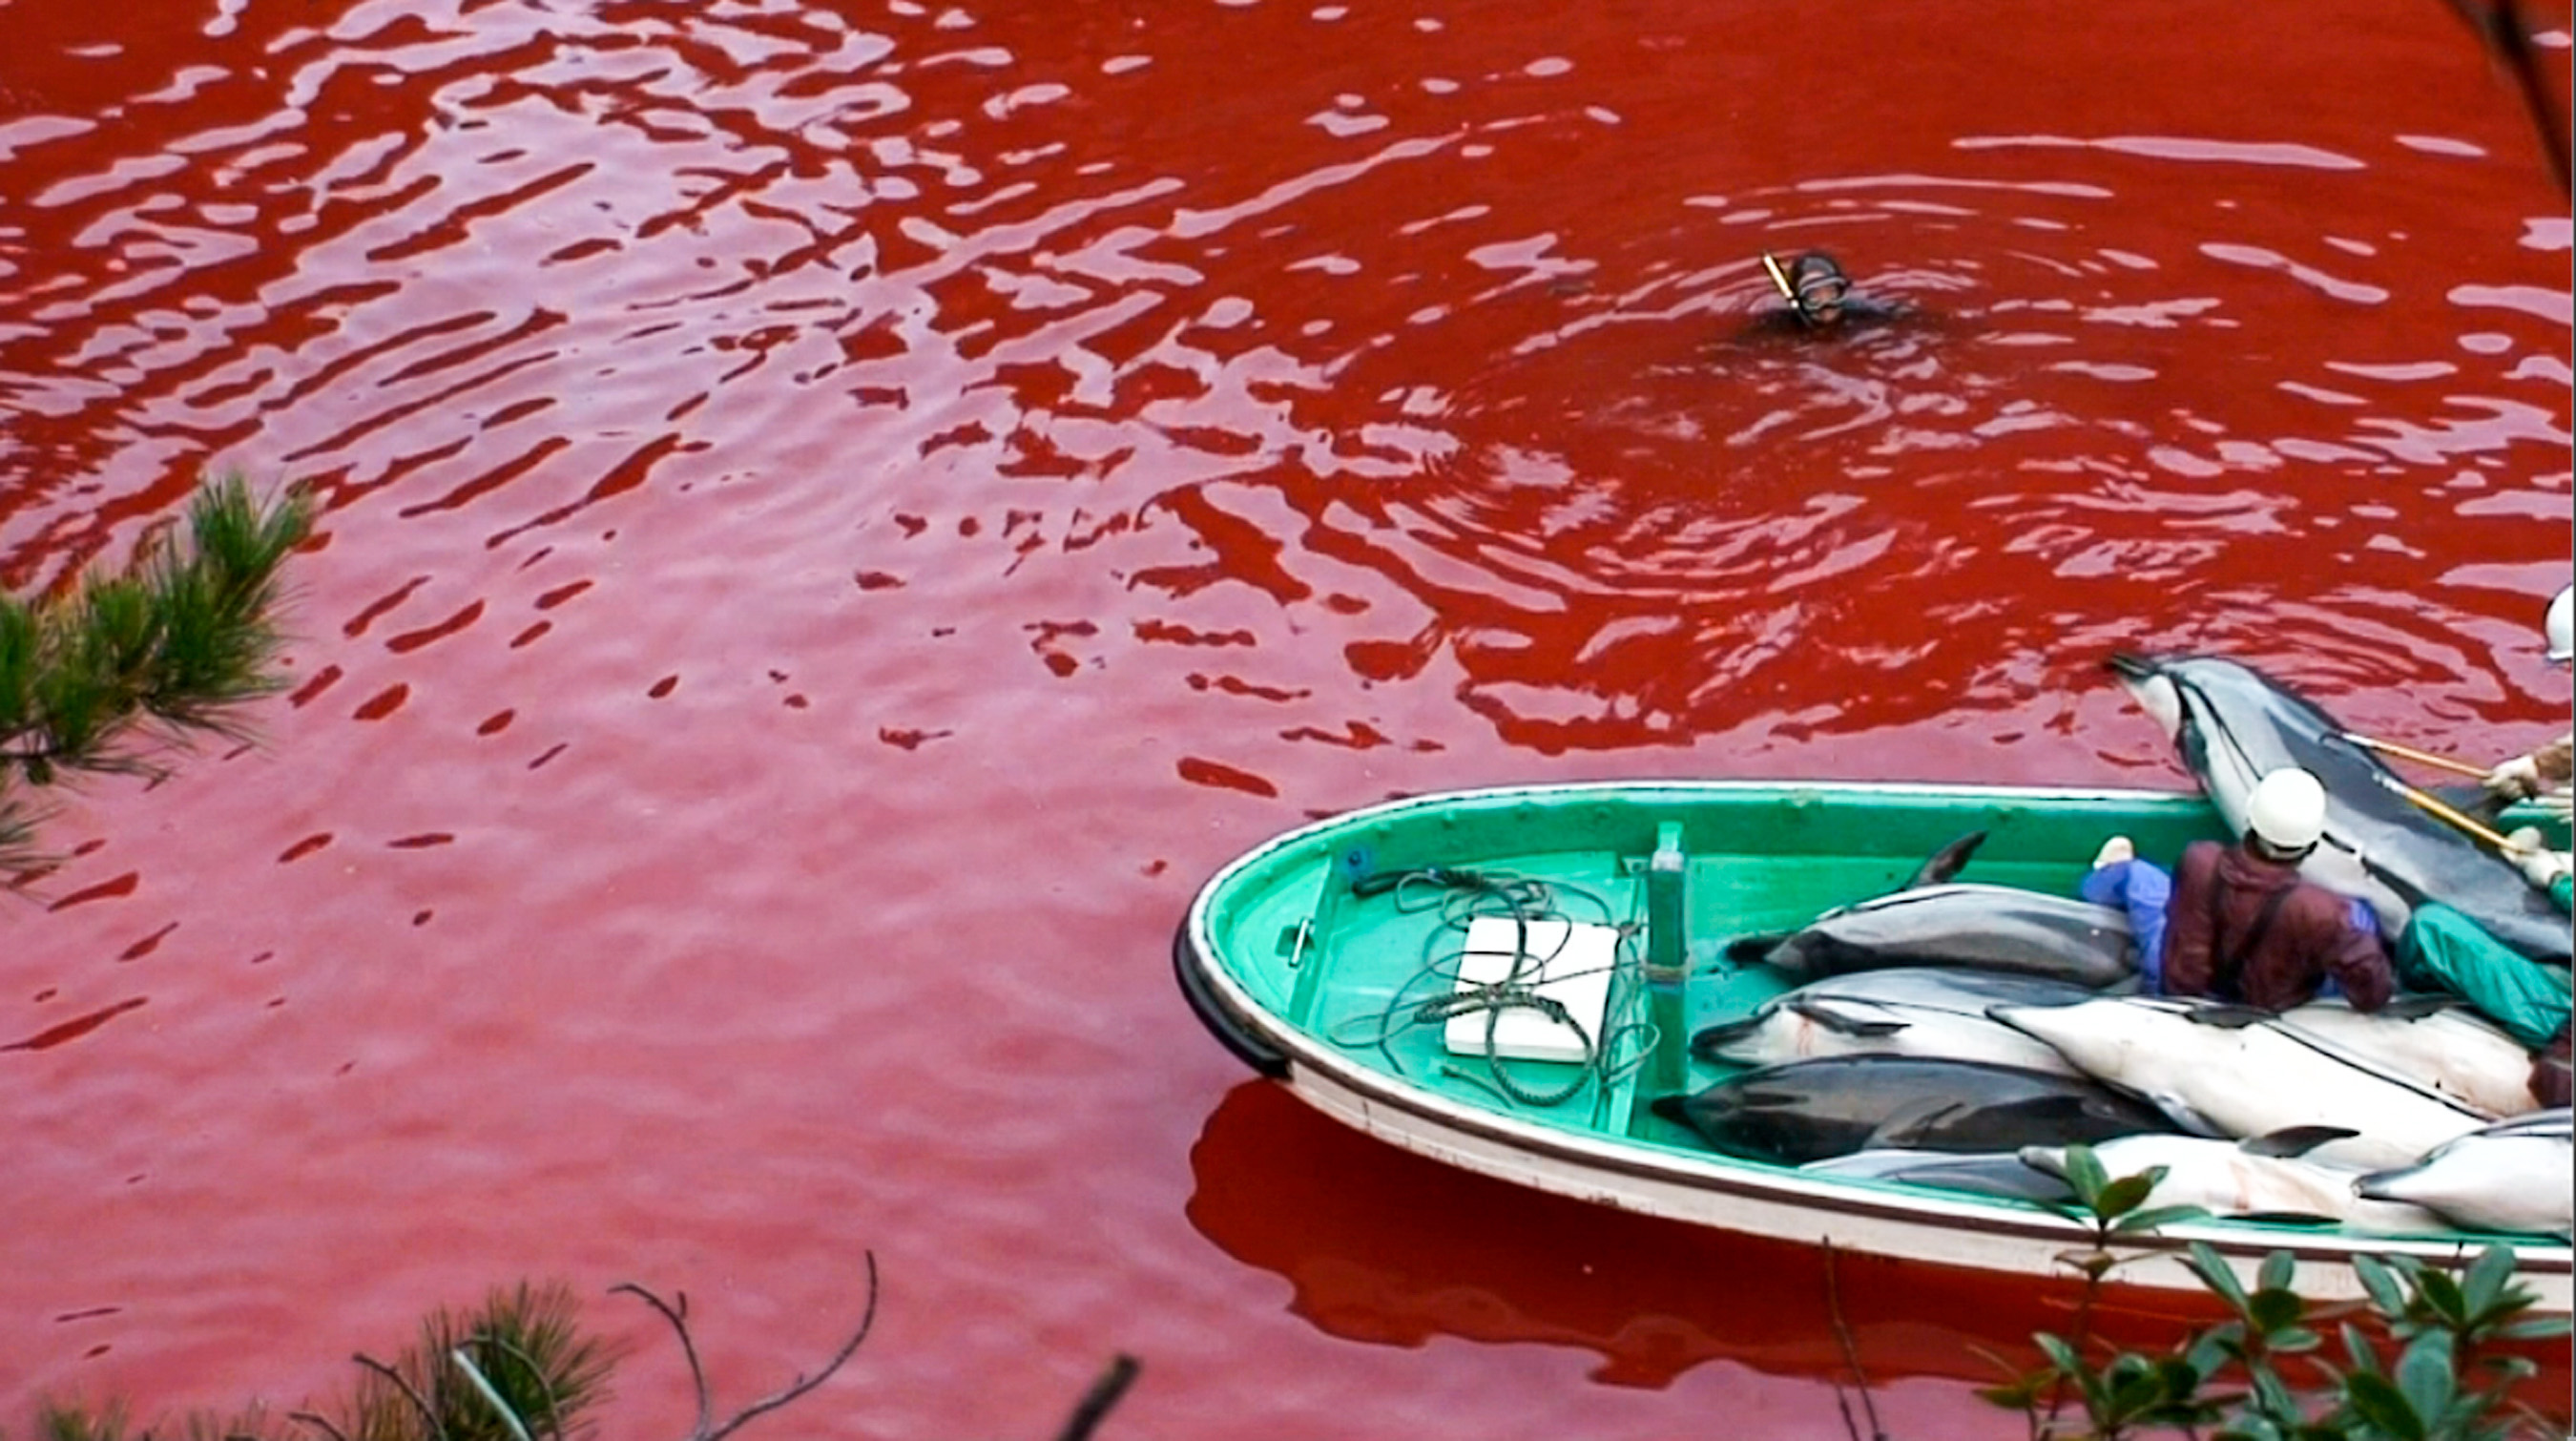 About 2300 dolphins are slaughtered for food every year in this secret cove near Taiji, Japan filmed with covert cameras by the Oceanic Preservation Society. Even though the meat is toxic the Japanese government sanctions the use of the mercury laced meat for school lunch programs.